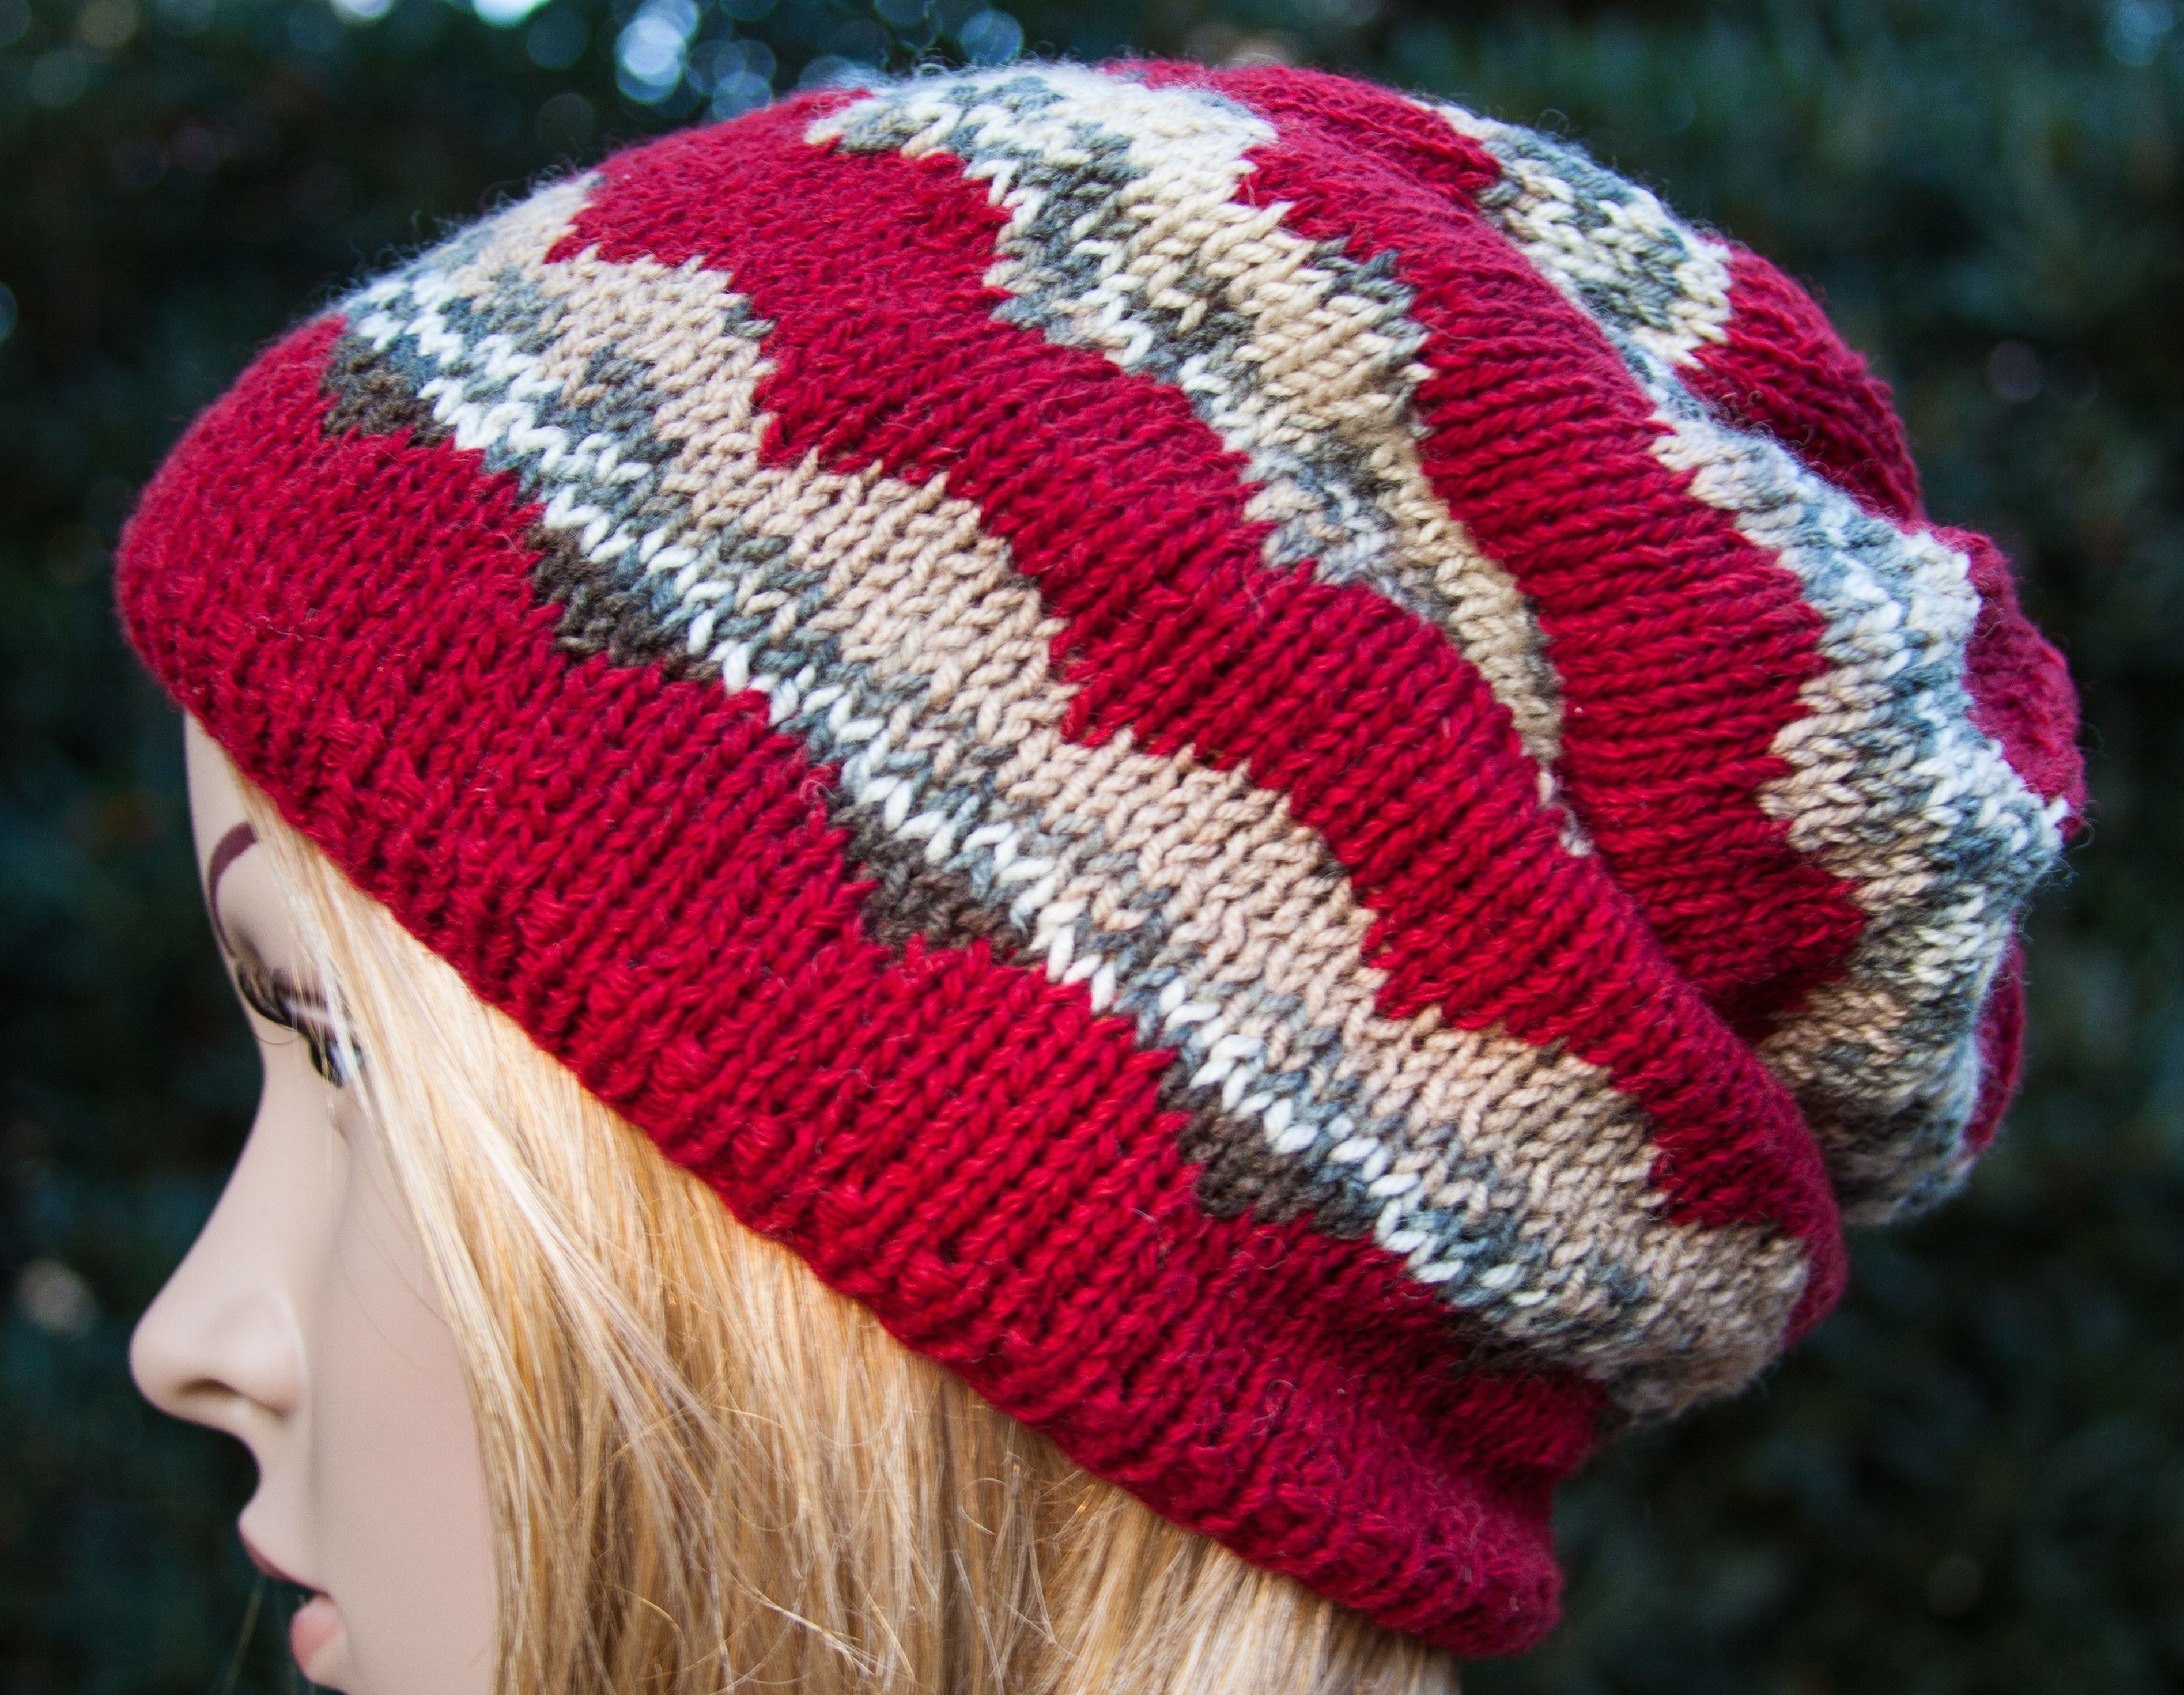 f13dc863a85 Hat Boho Hippie Ethno Hipster Hand knitted Merino wool Jacquard ...